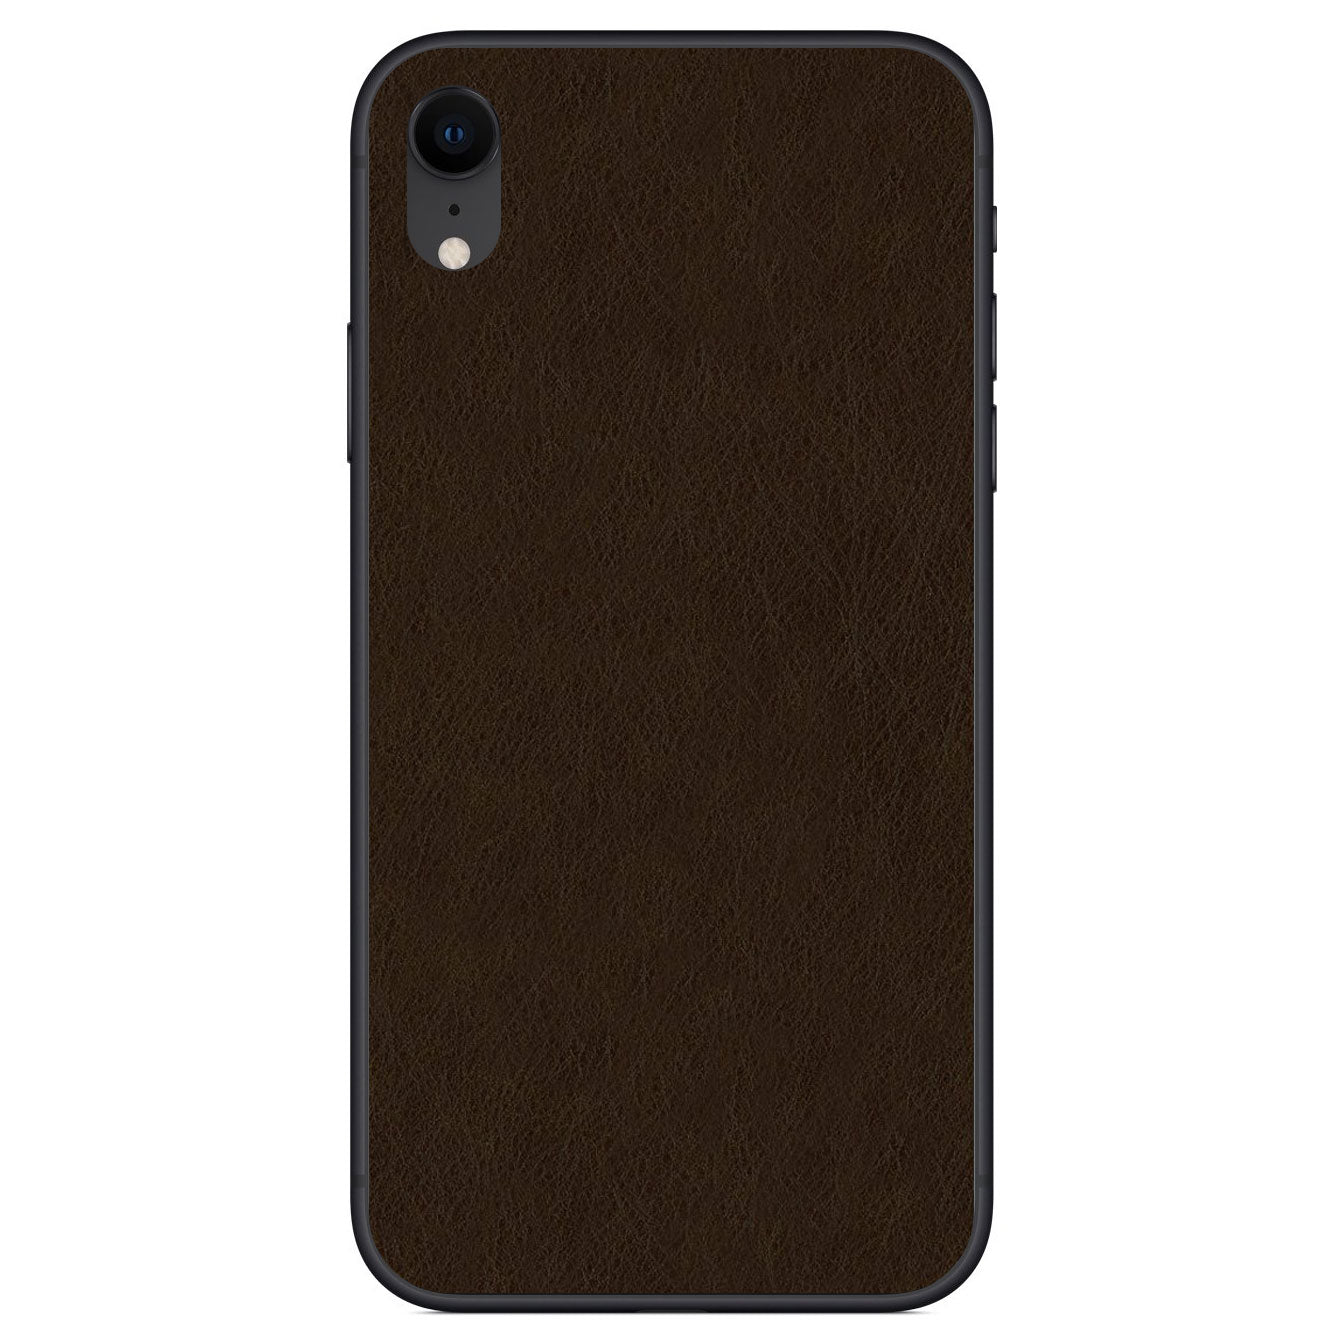 Espresso iPhone XR Leather Skin